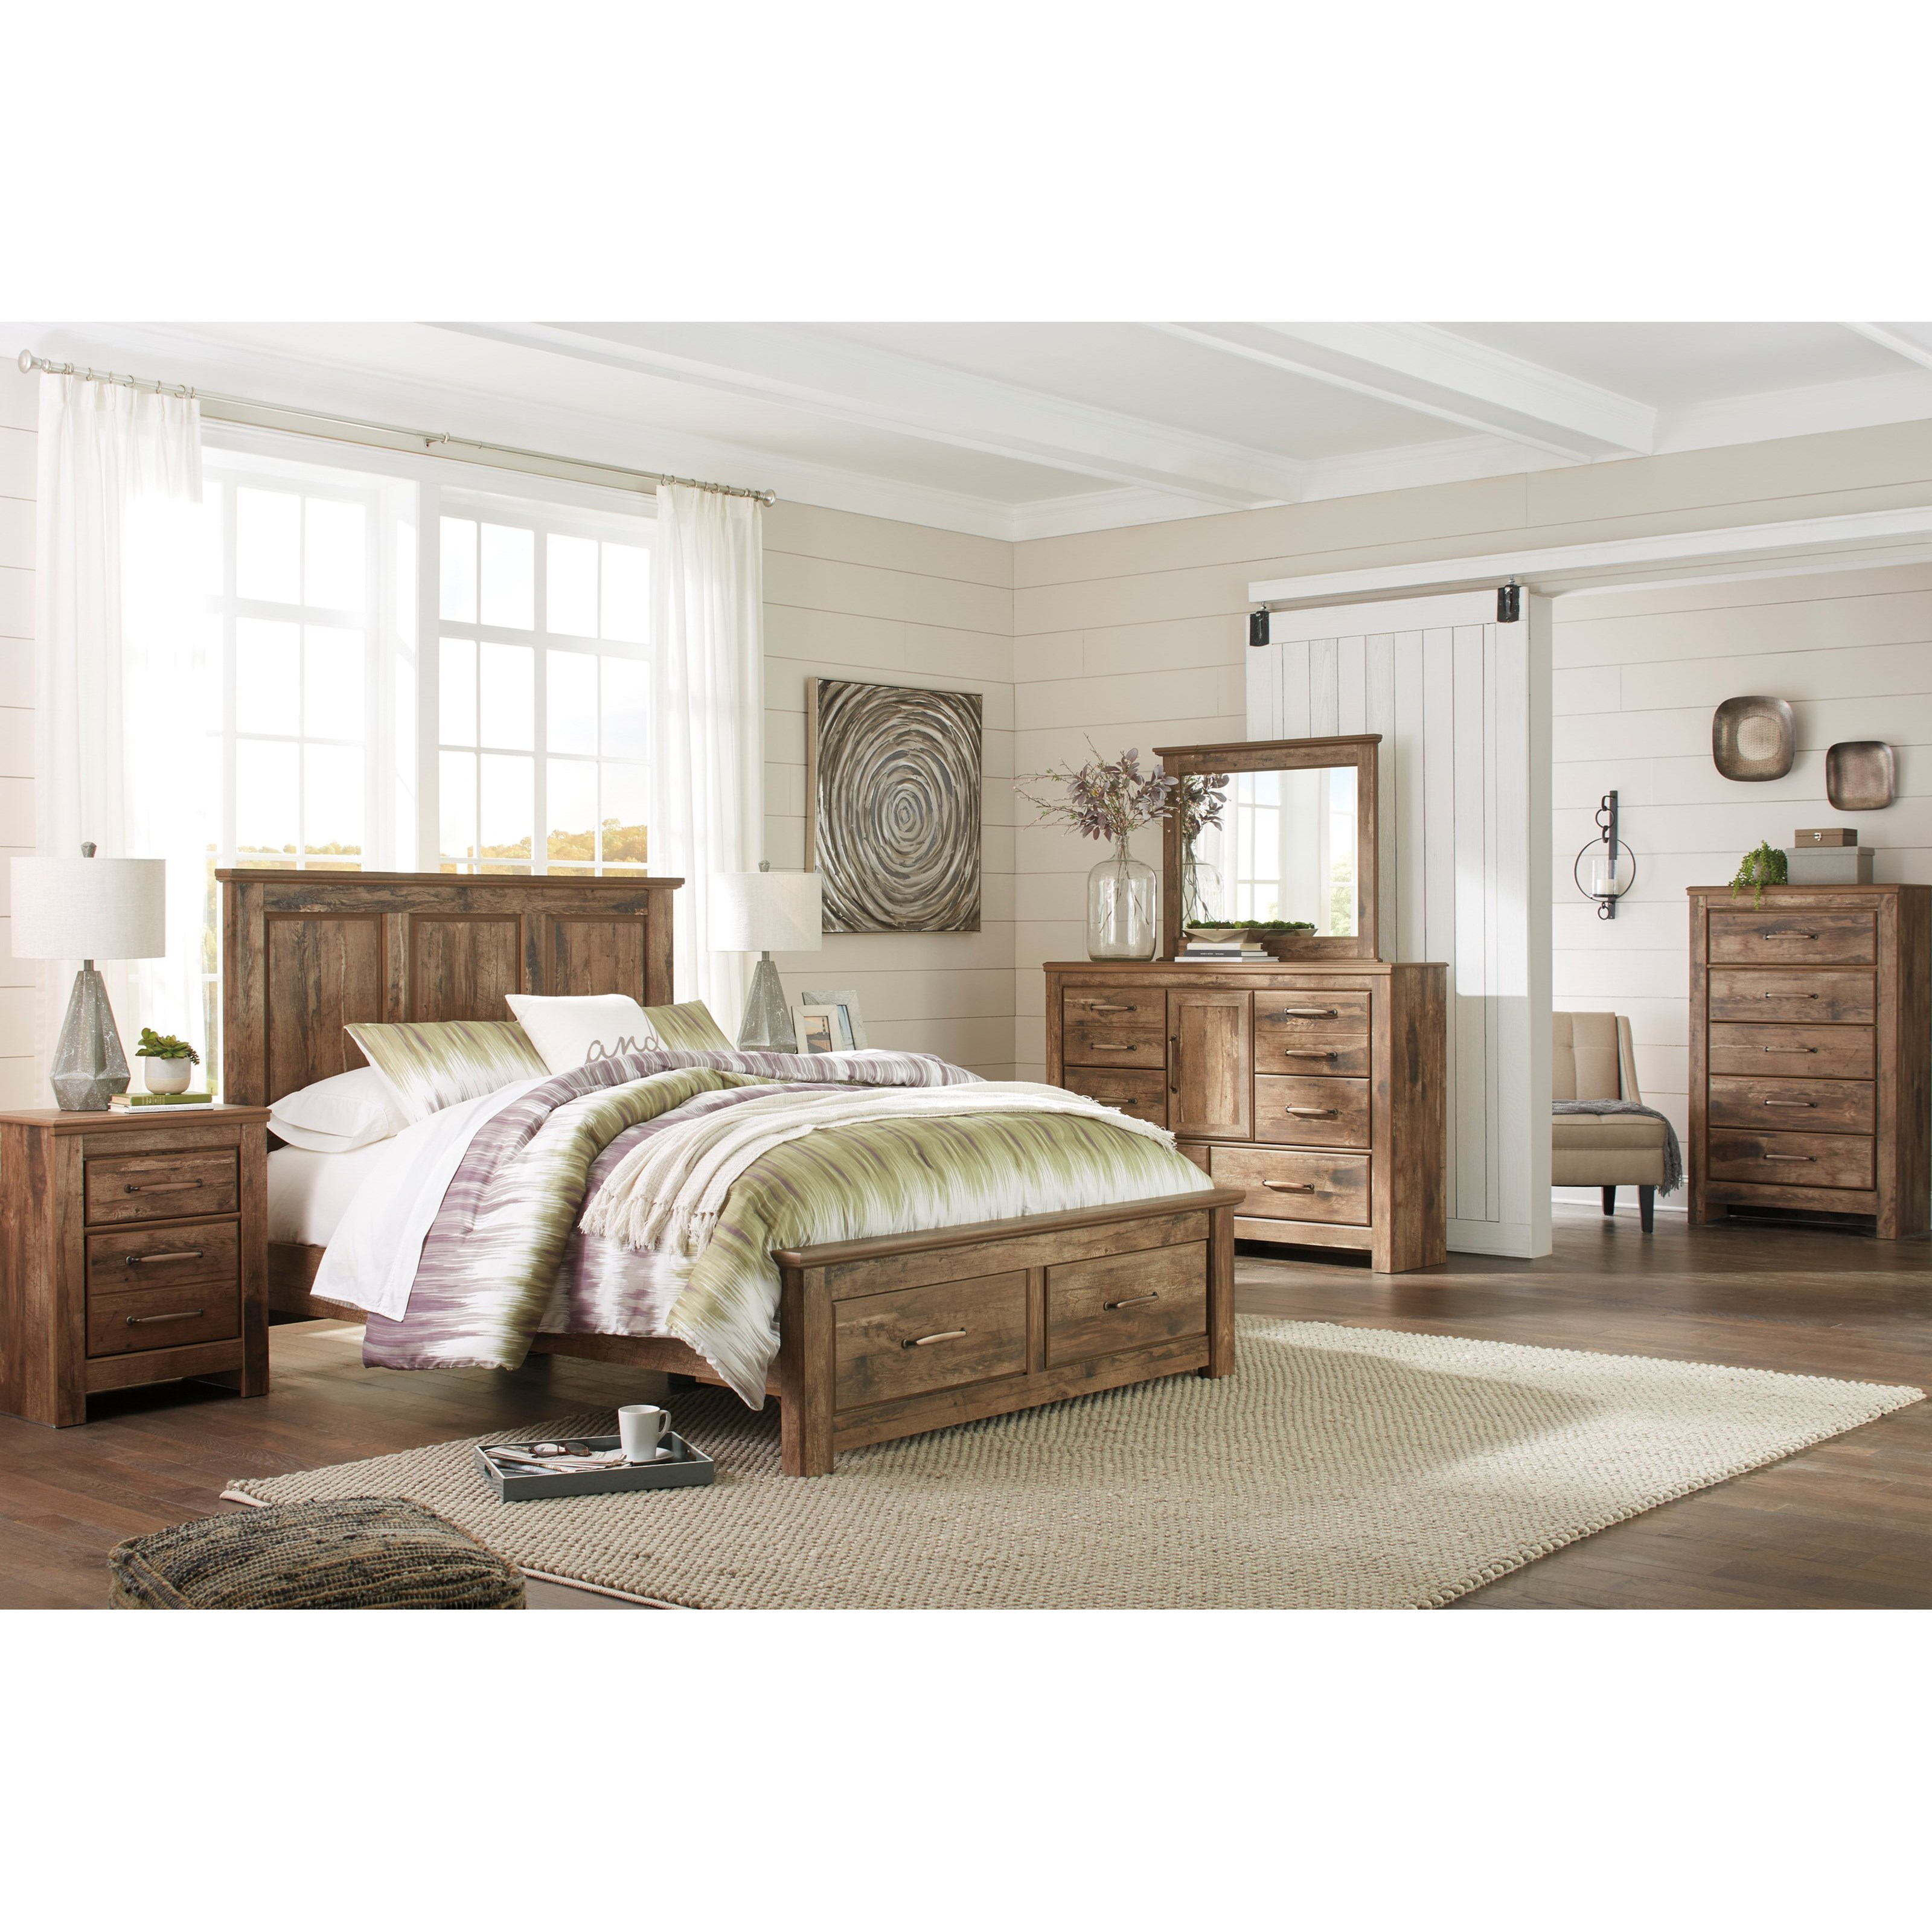 Benchcraft Blaneville Queen Bedroom Group - Item Number: B224 Q Bedroom Group 3